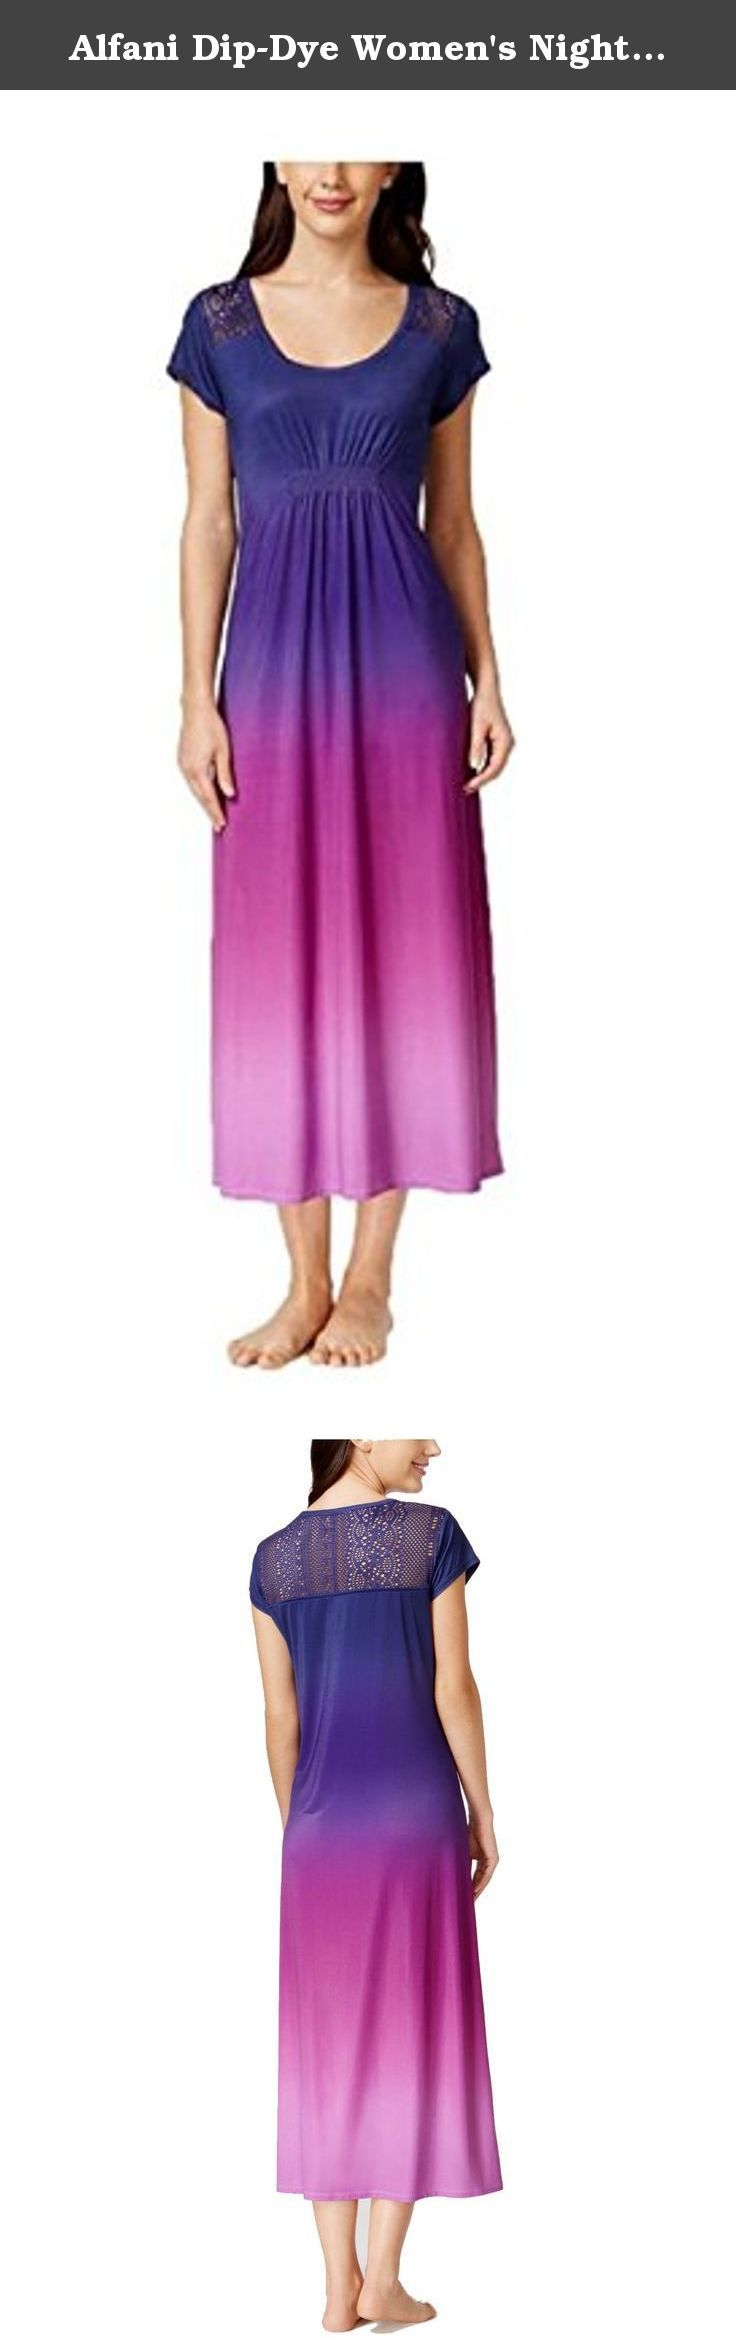 Alfani Dip-Dye Women's Nightgown (Large, Iris Dip Dye). Look and feel beautiful in this free-flowing nightgown from Alfani, with lovely crochet details at the back and shoulders. Scoop neck Short sleeves Lace crochet detail at back and shoulders Full-length Polyester/spandex Machine washable Imported.